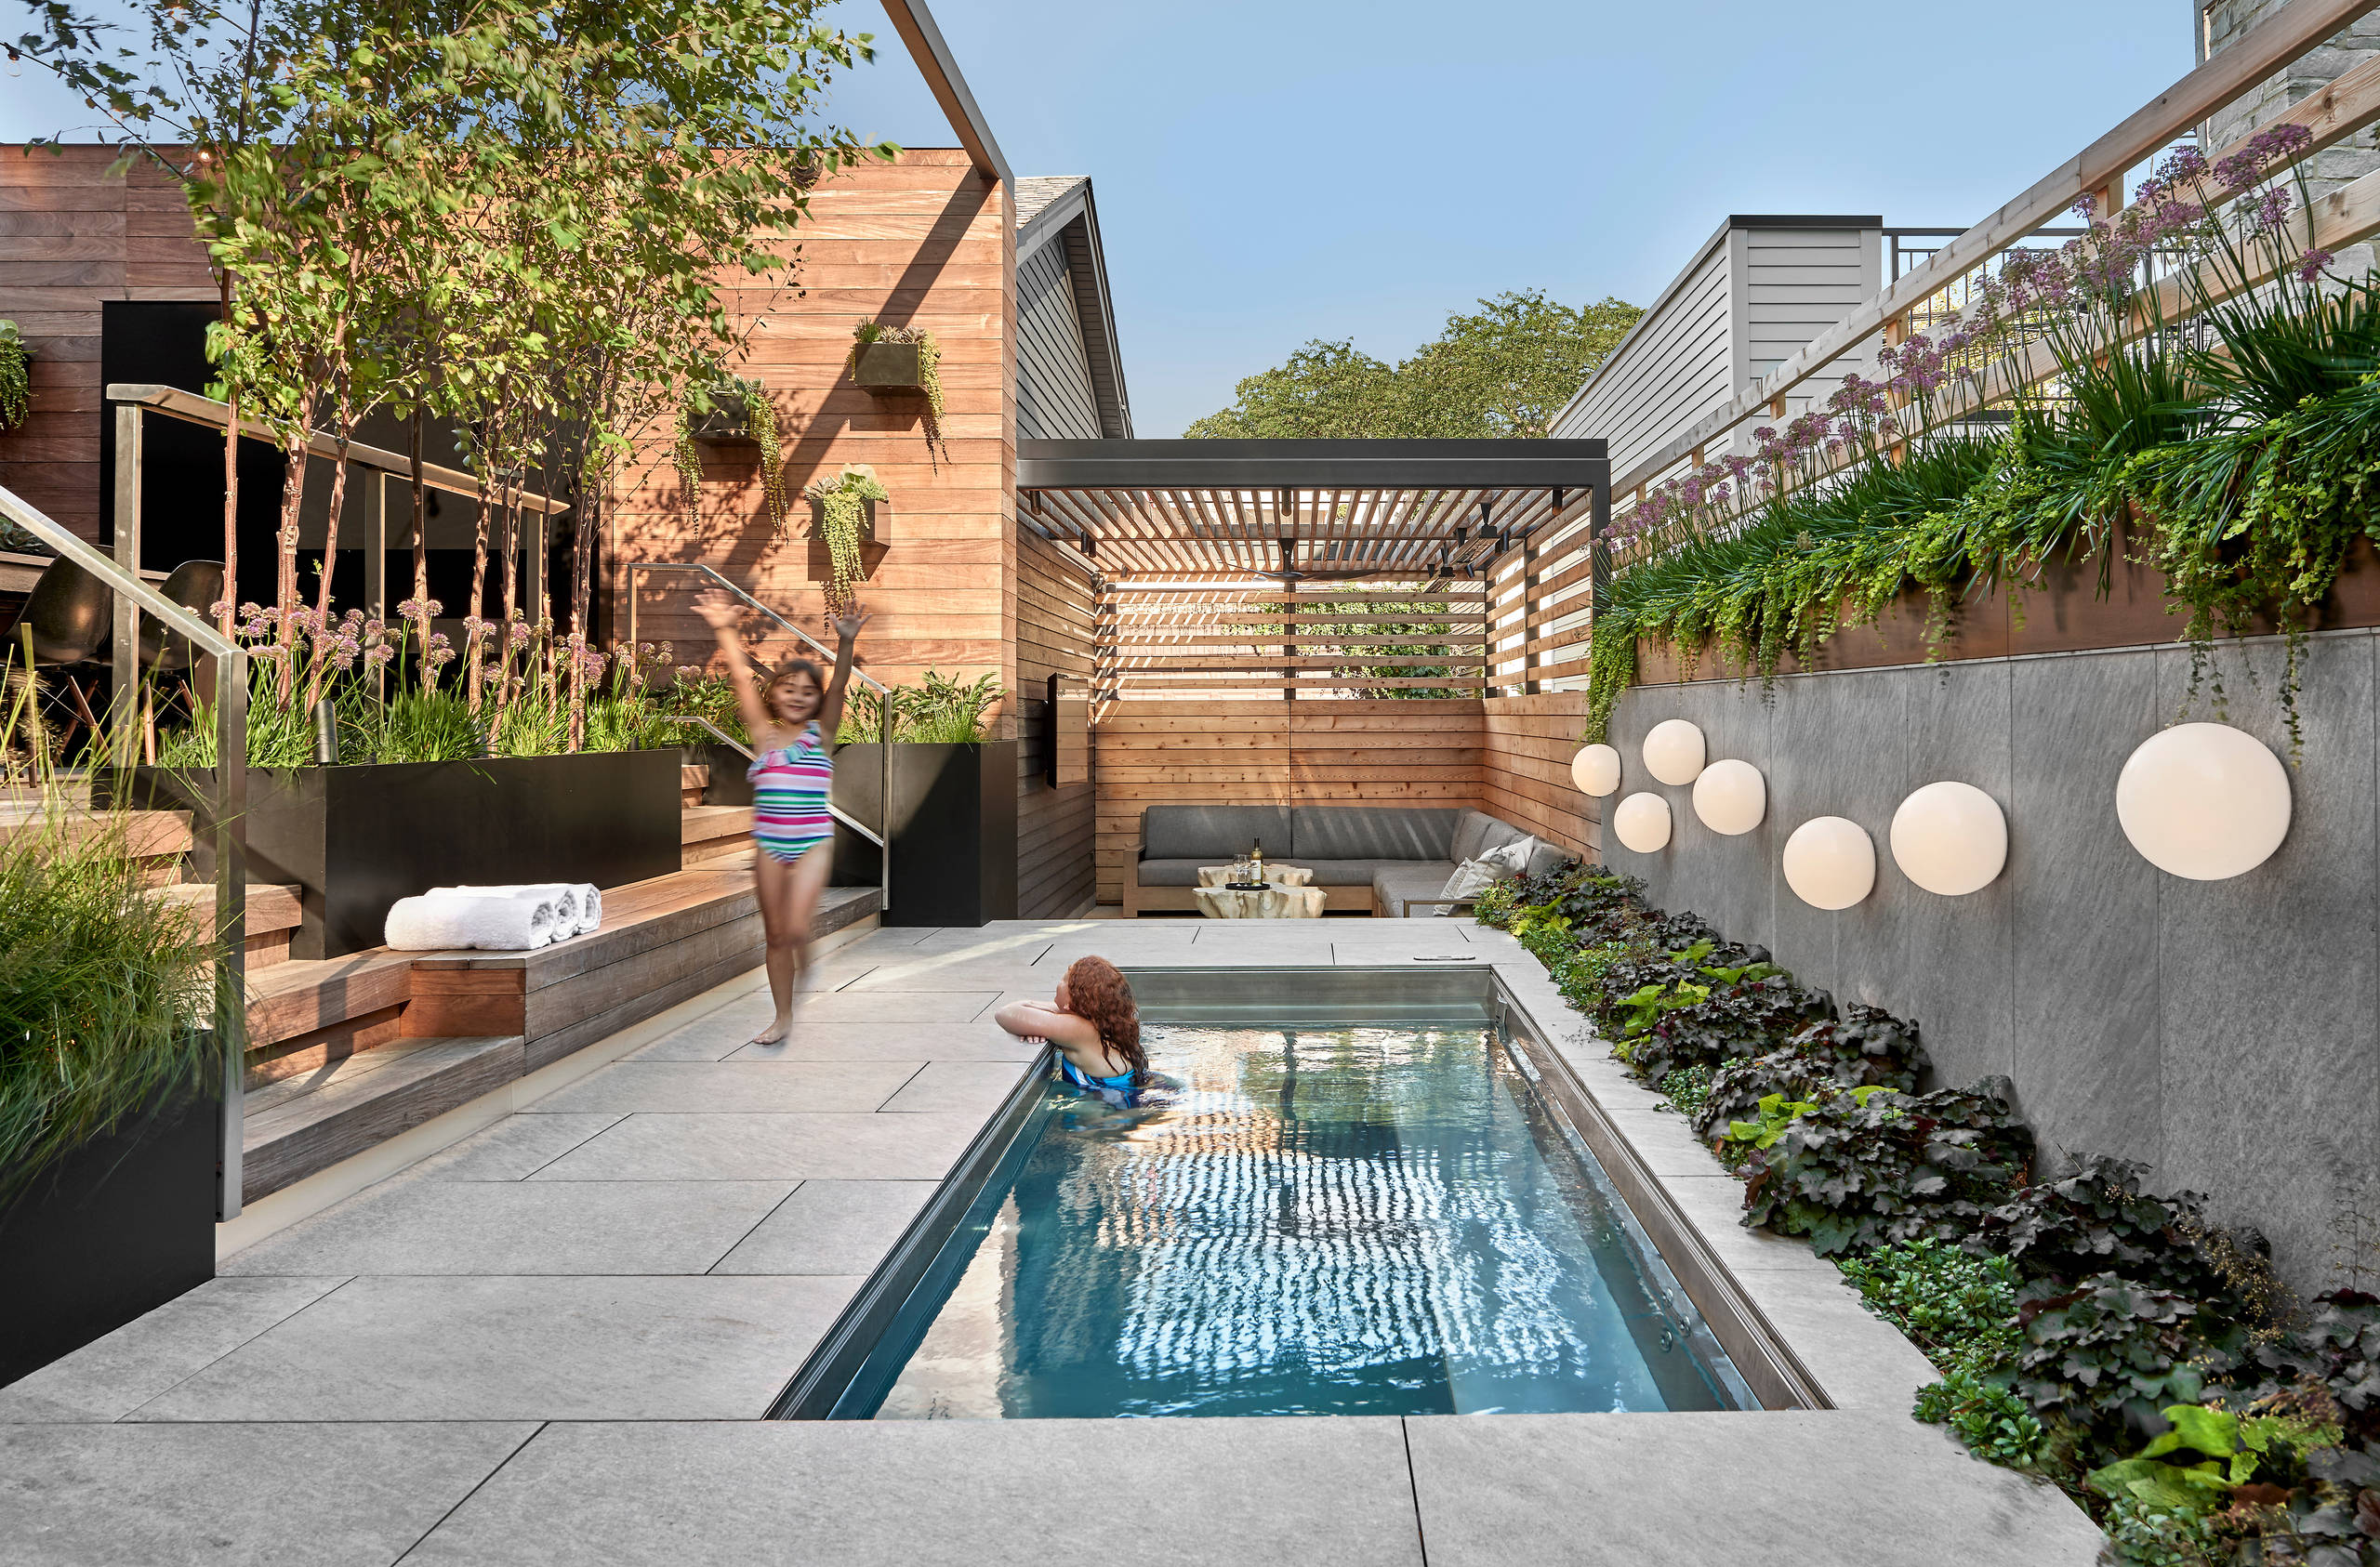 75 Beautiful Backyard Pool Pictures Ideas March 2021 Houzz